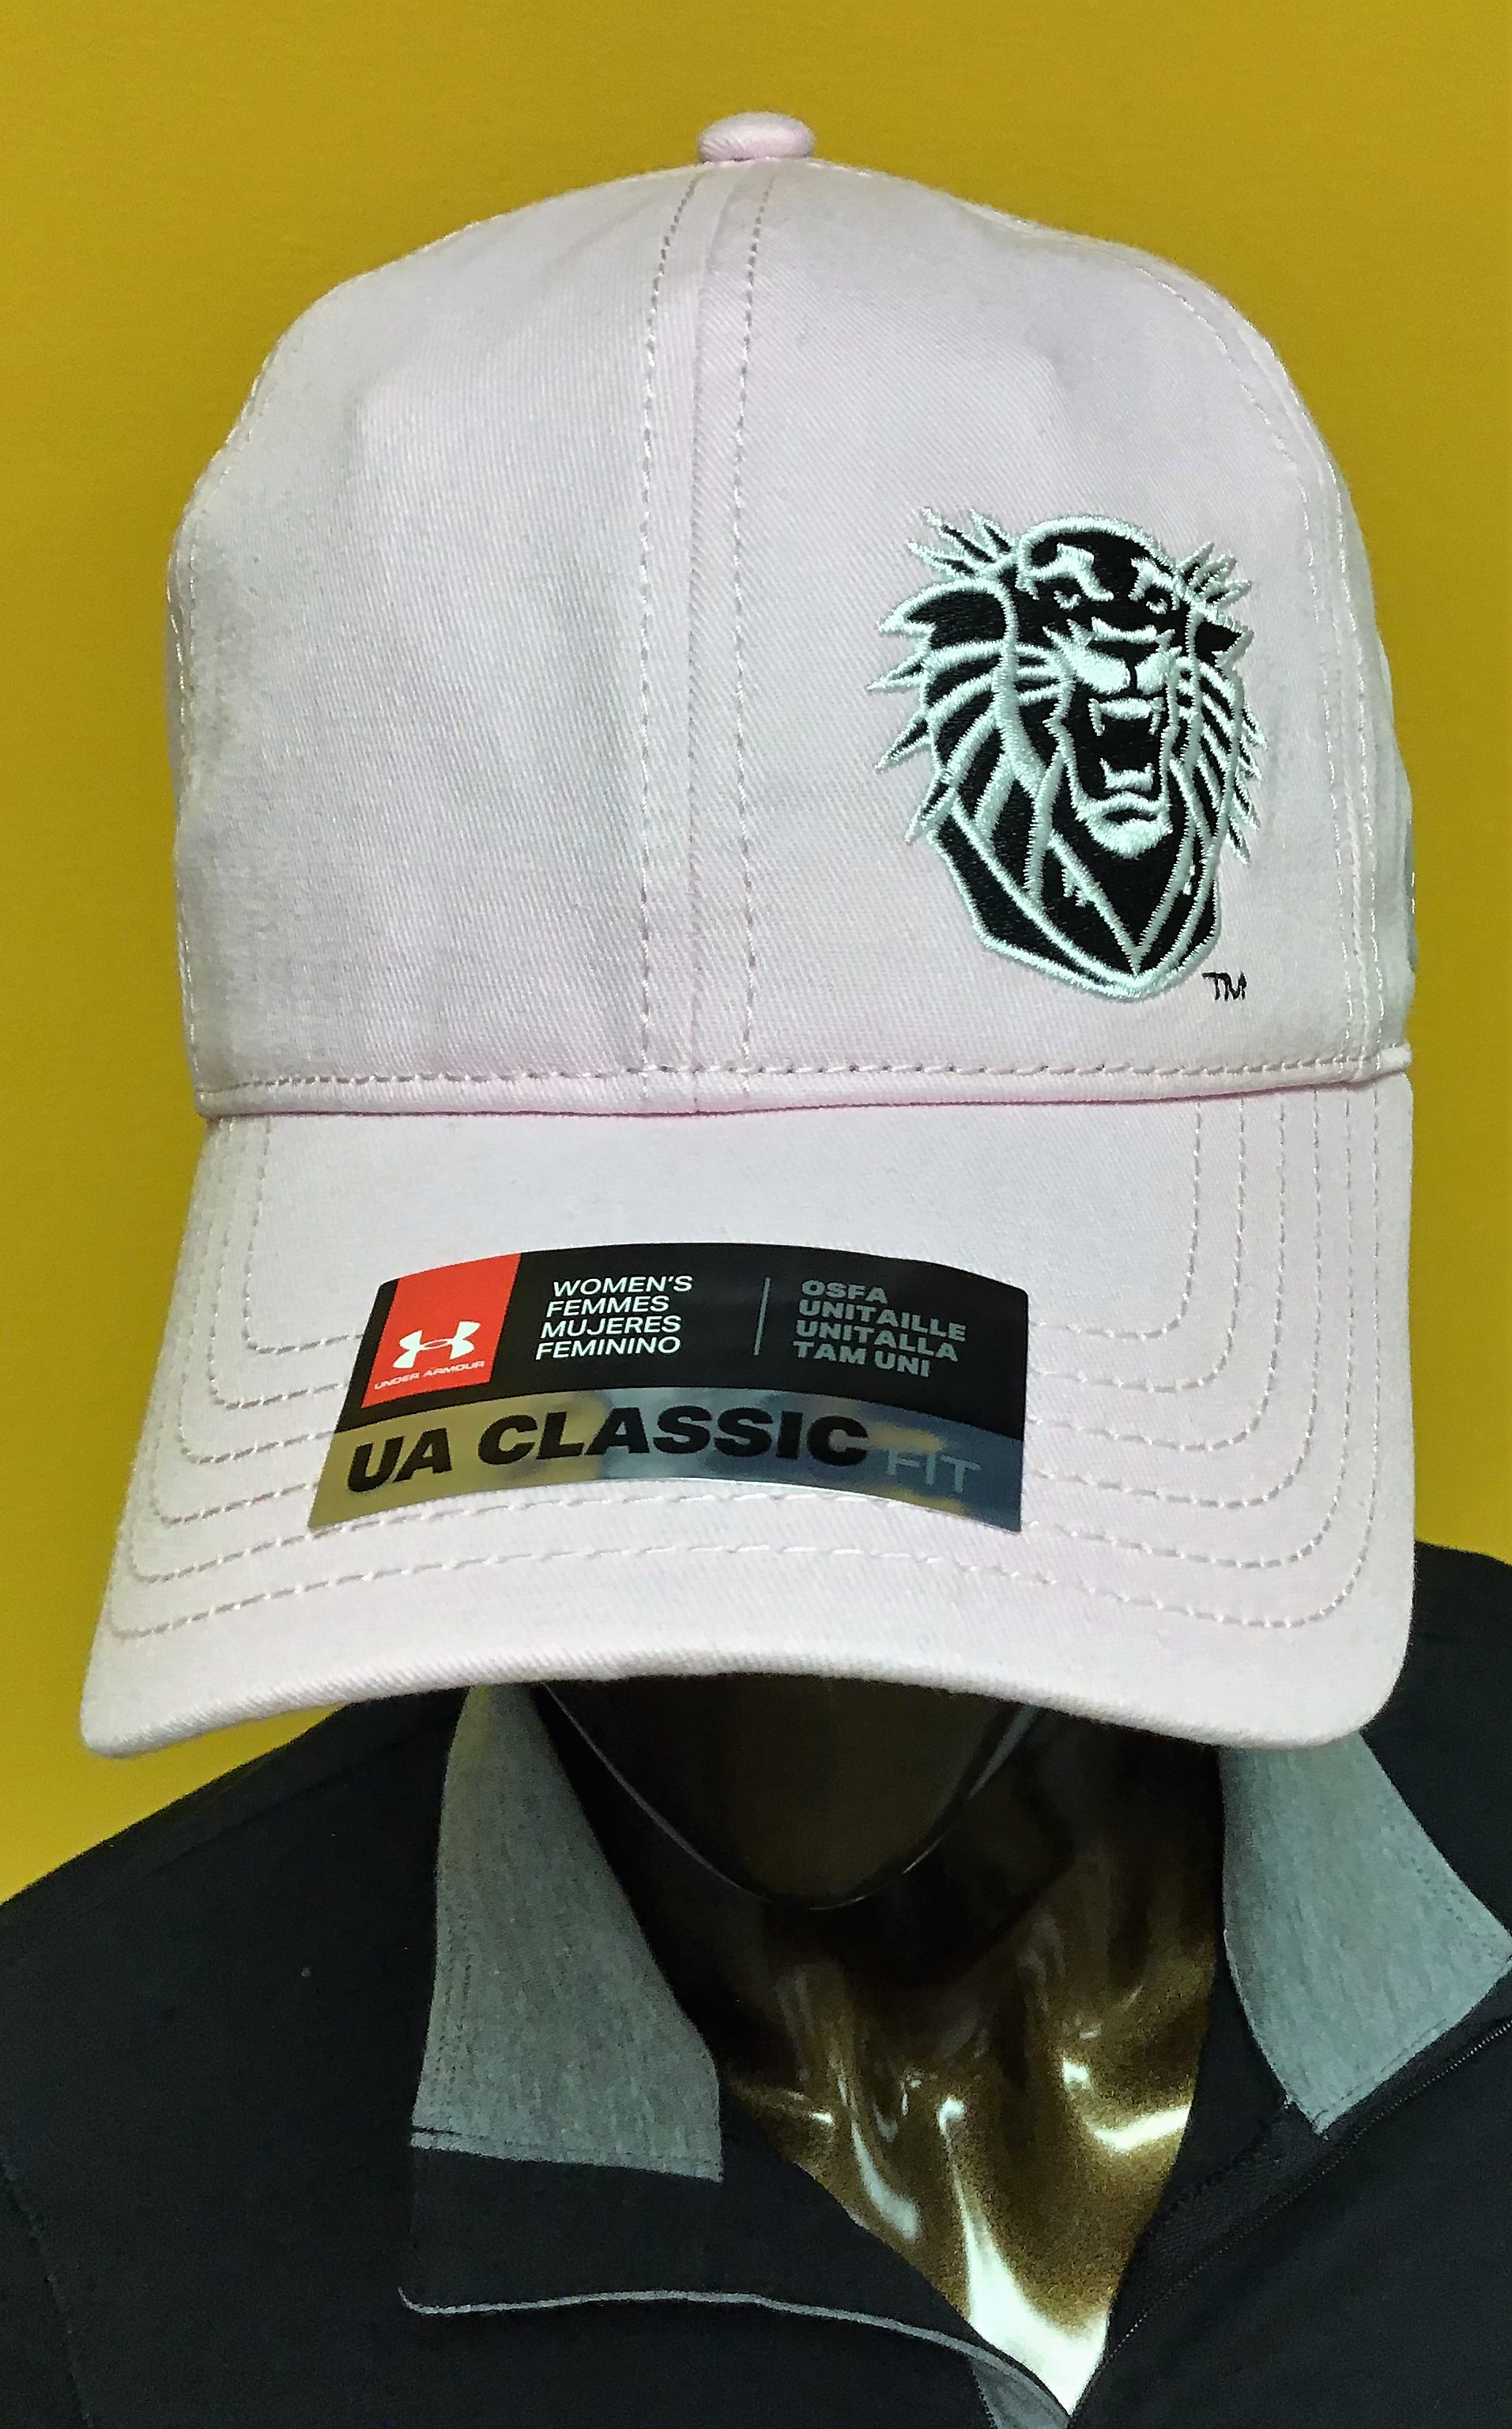 Image for the Women's Under Armour Hat Garment Washed Blithe Pink product